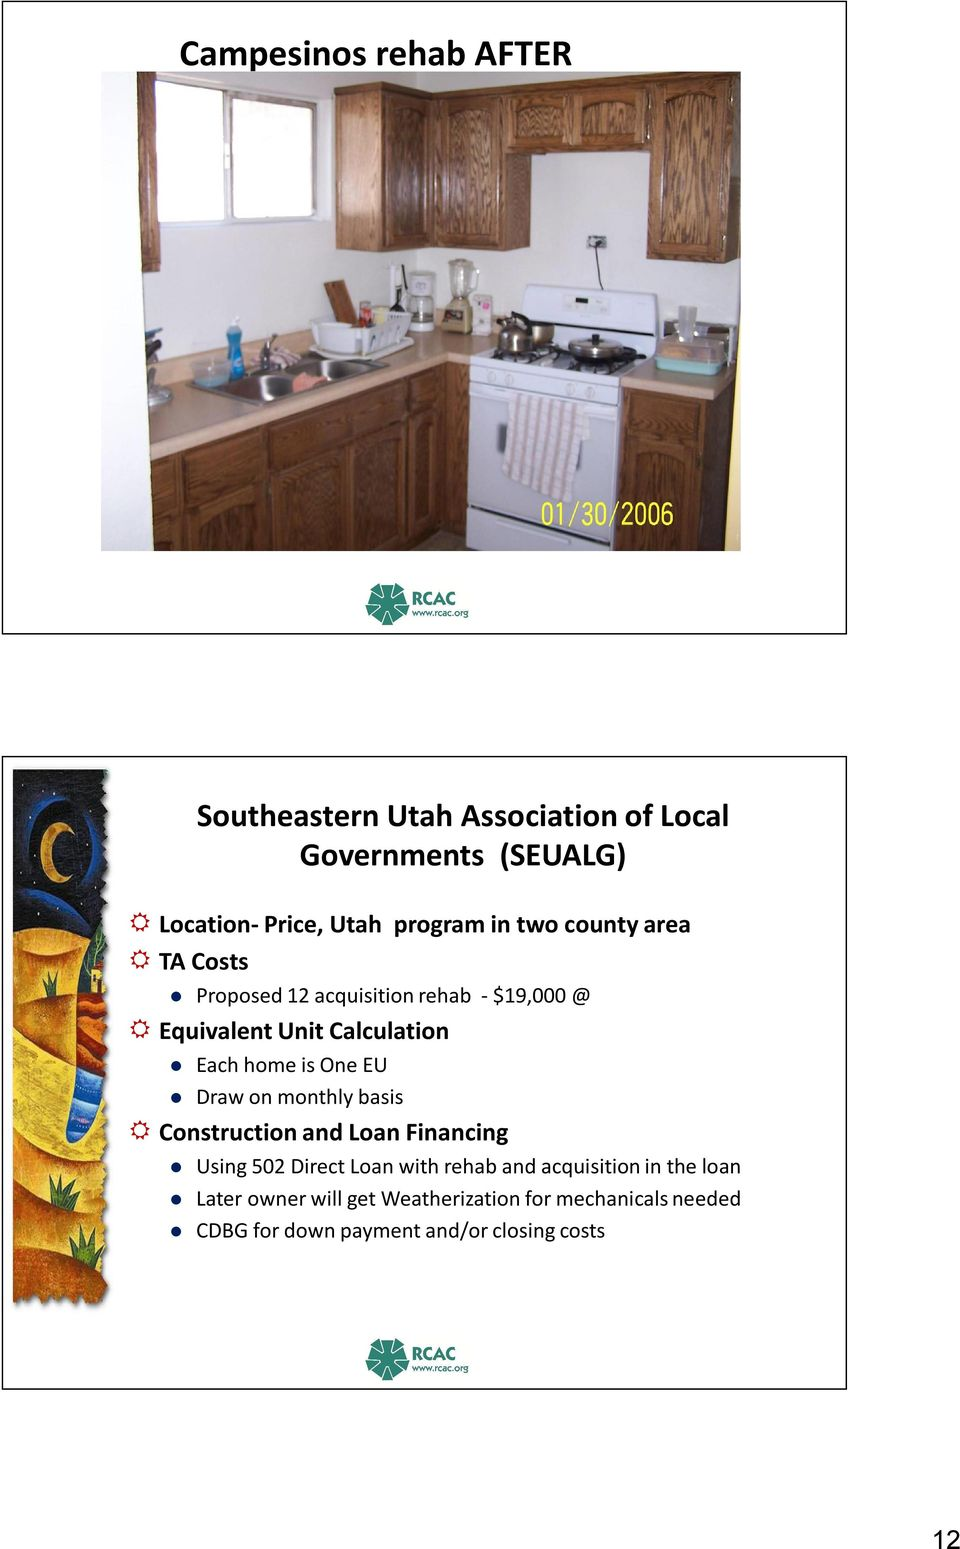 Southeastern Utah Association of Local Governments (SEUALG) Using 502 Direct Loan with rehab and acquisition in